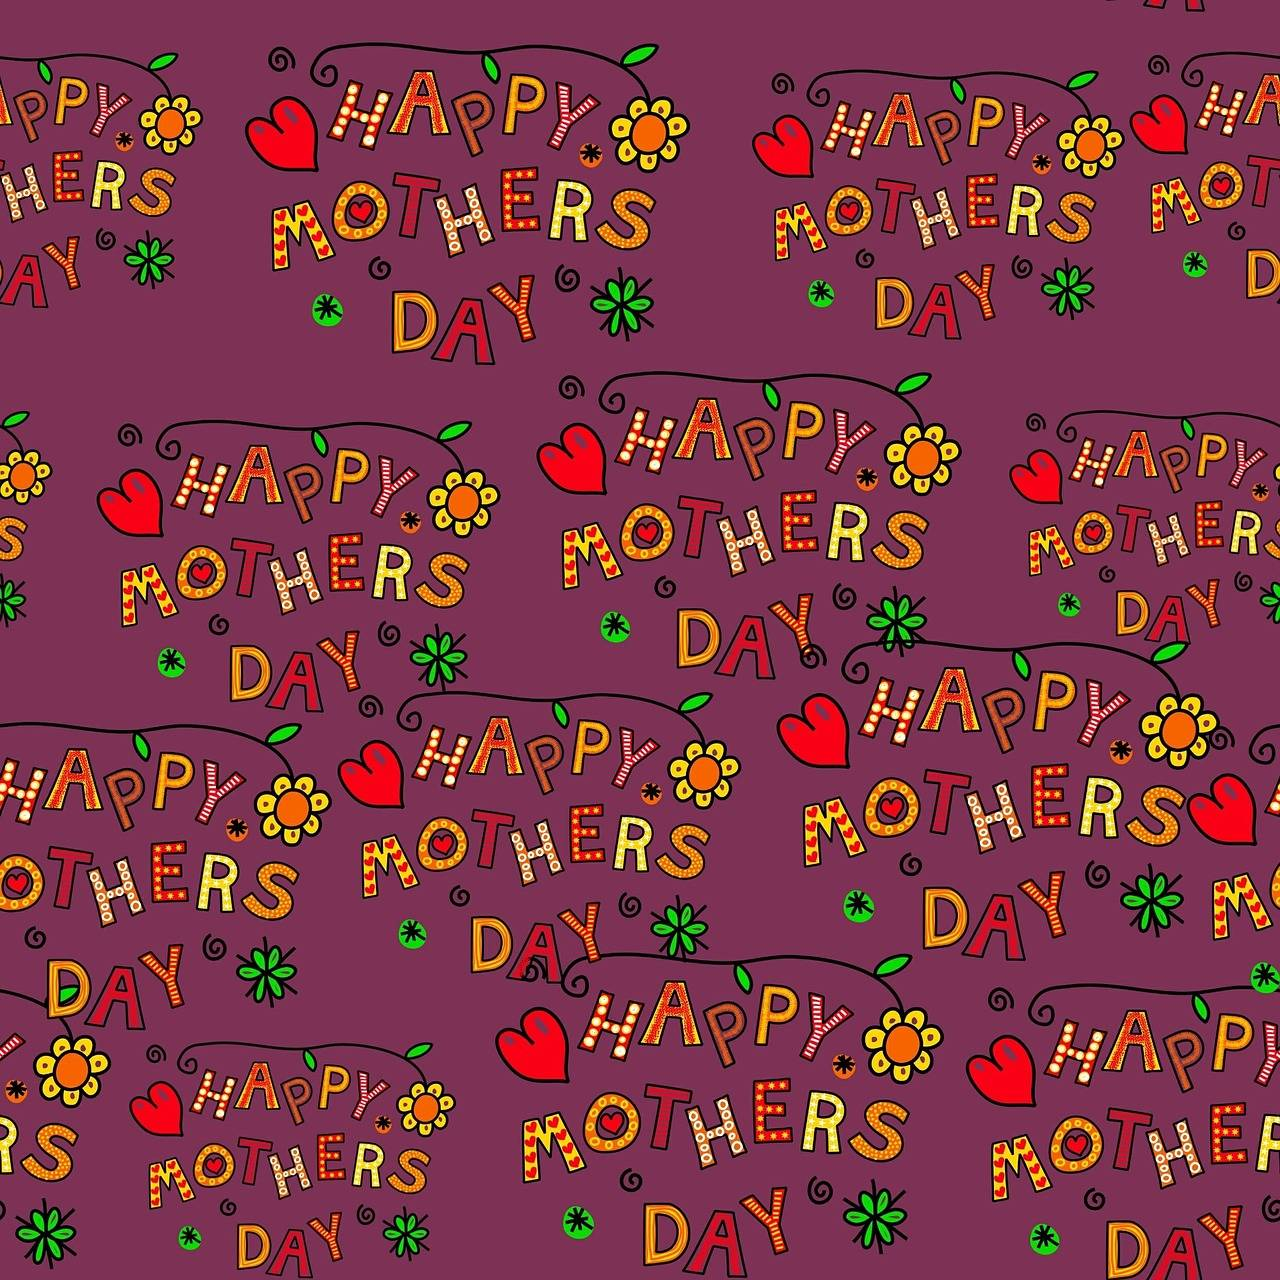 Happy Mother's Day 2020: Photos, WhatsApp and Facebook Status